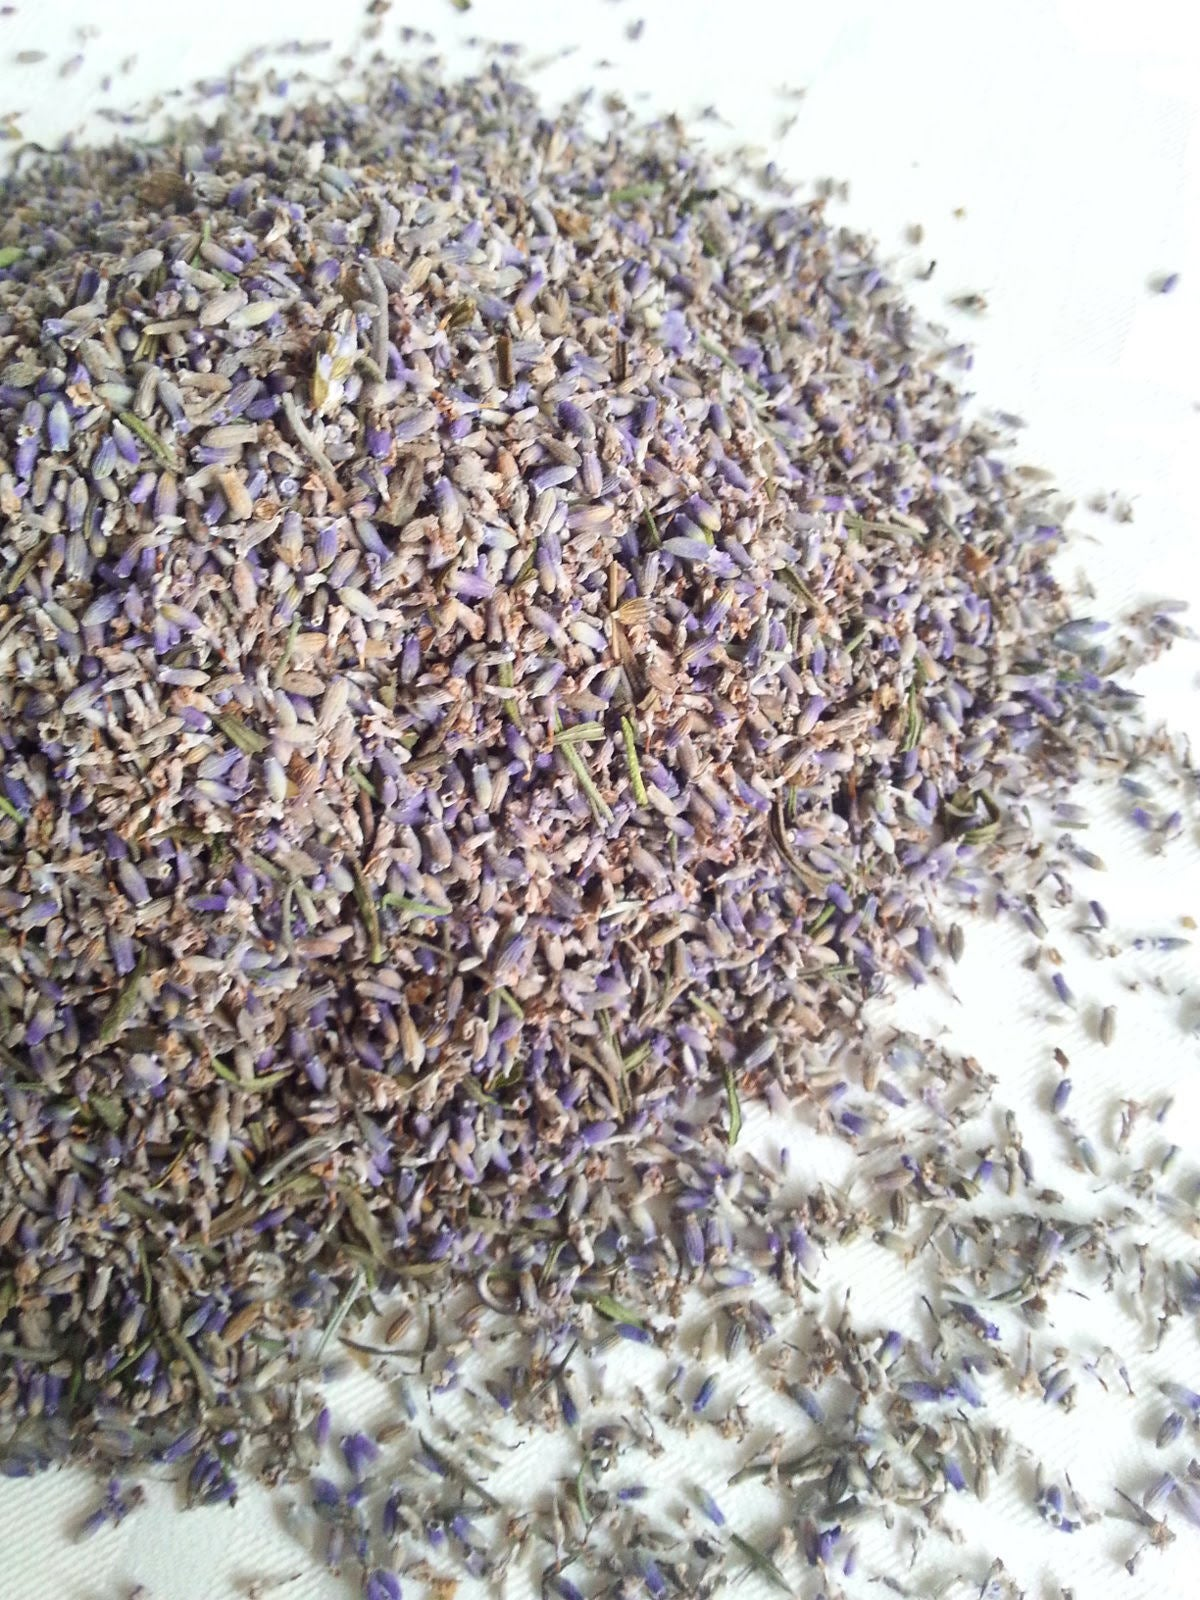 Bulk Dried Lavender Buds - 1 lb